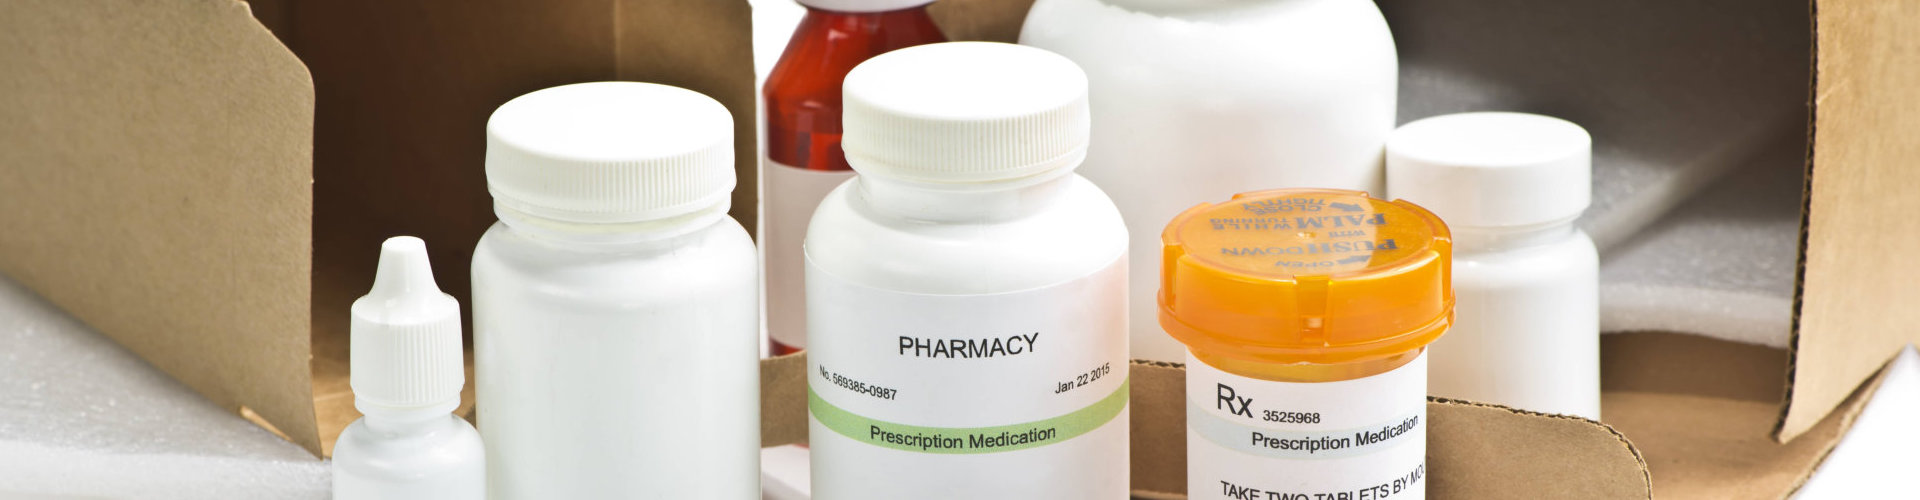 packaged medicines